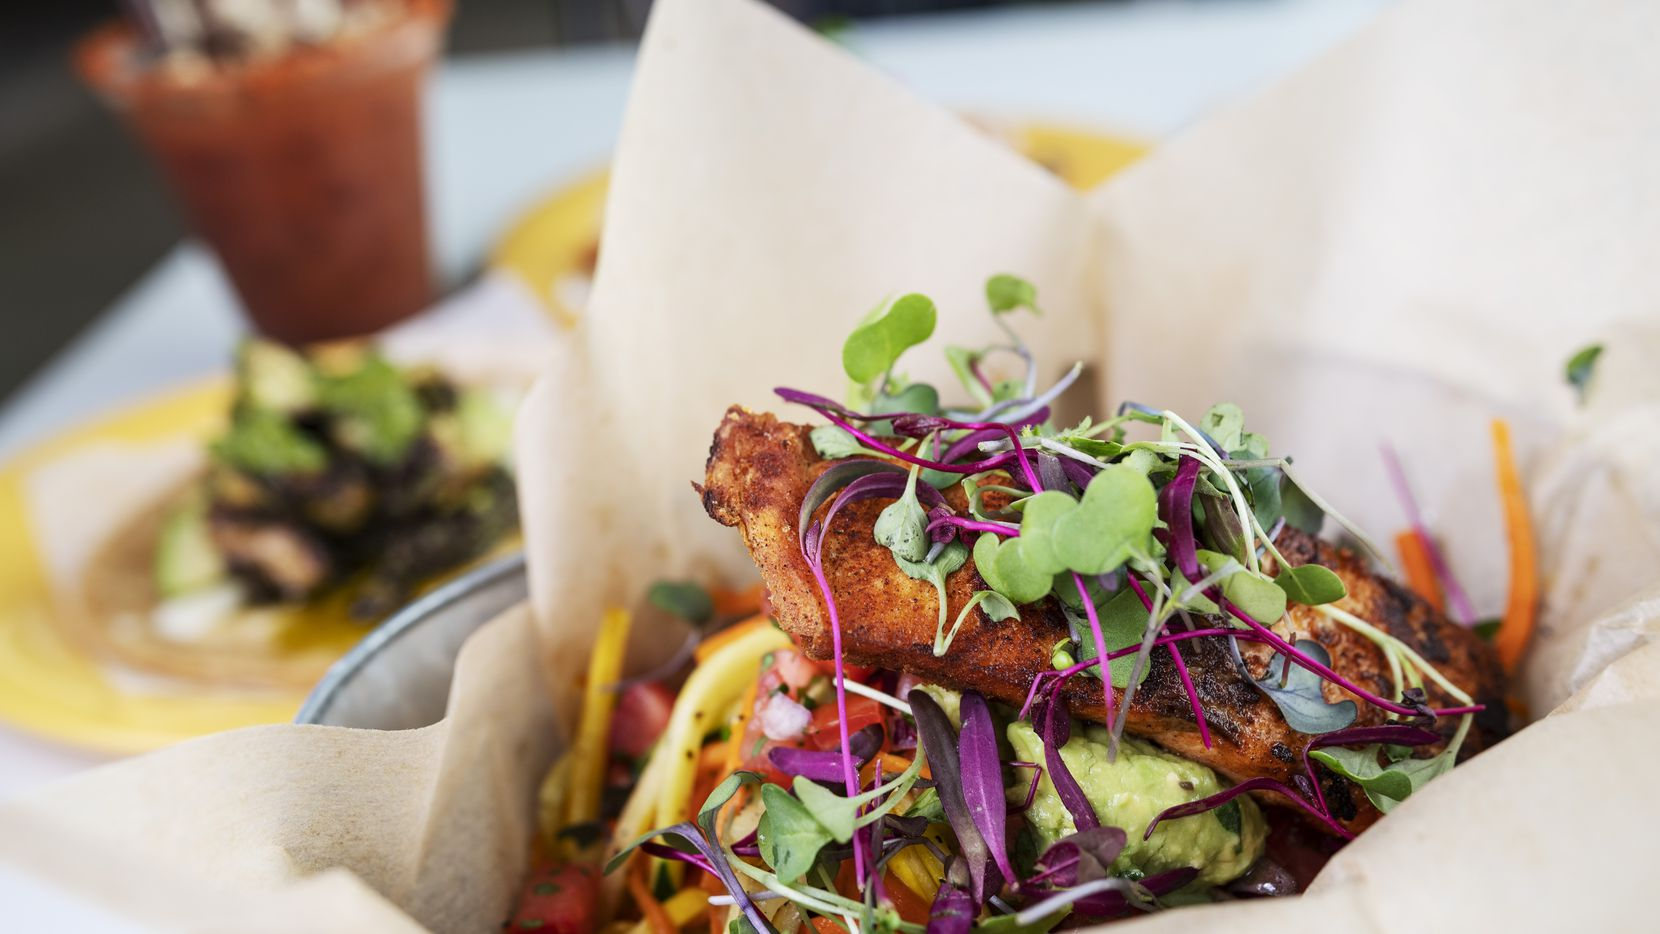 Jesus Carmona's new restaurant Milagro includes lots of seafood and vegetable dishes.